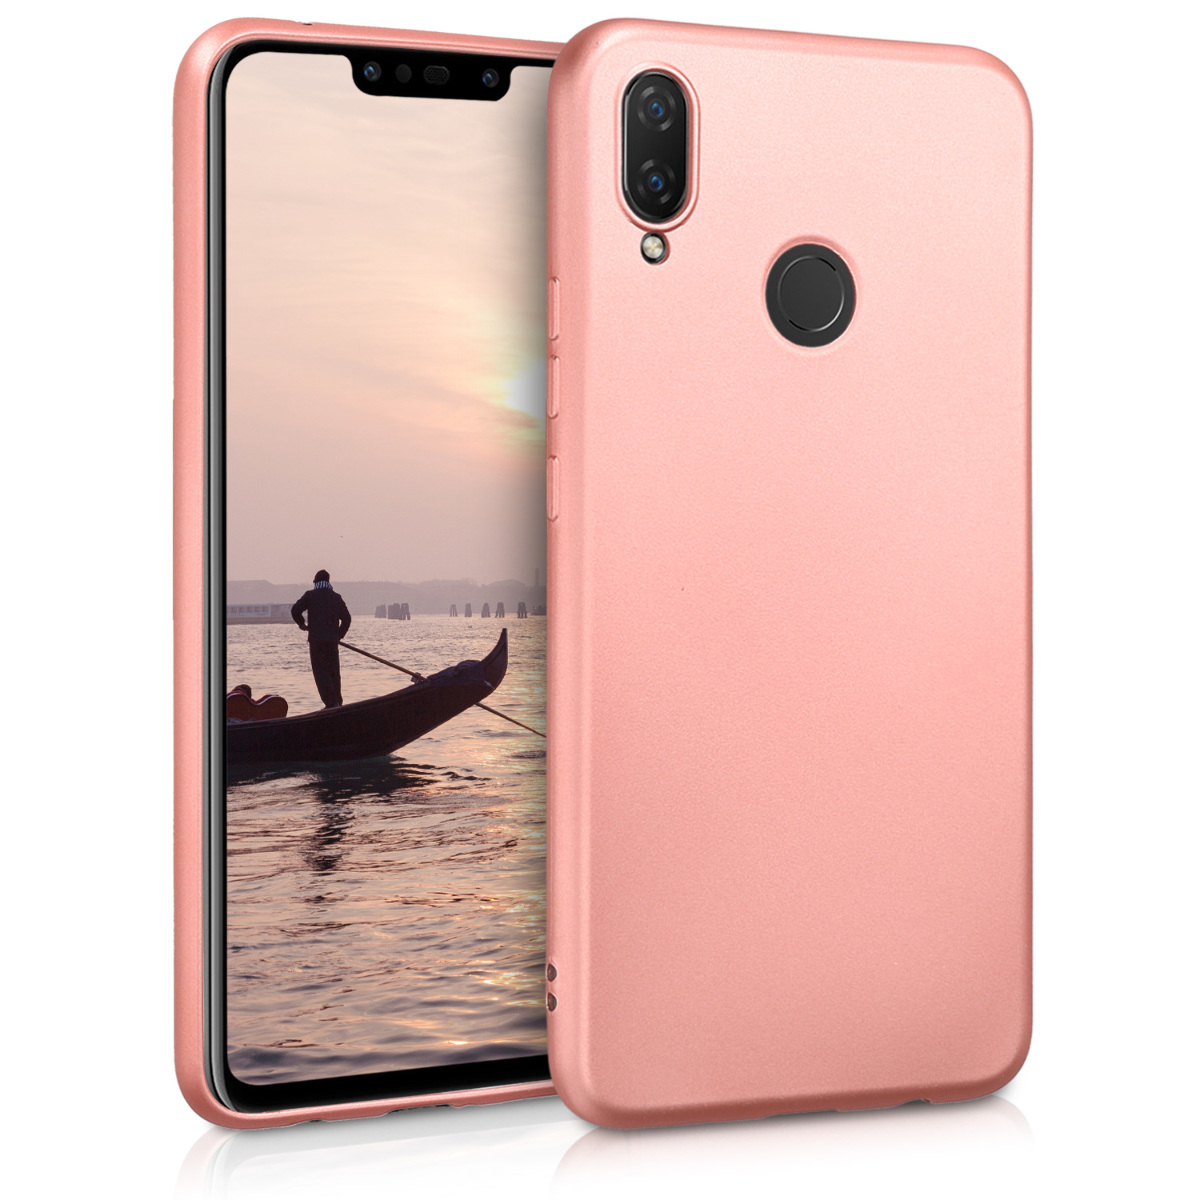 KW Θήκη Σιλικόνης Huawei P Smart Plus - Metallic Rose Gold (46093.31)